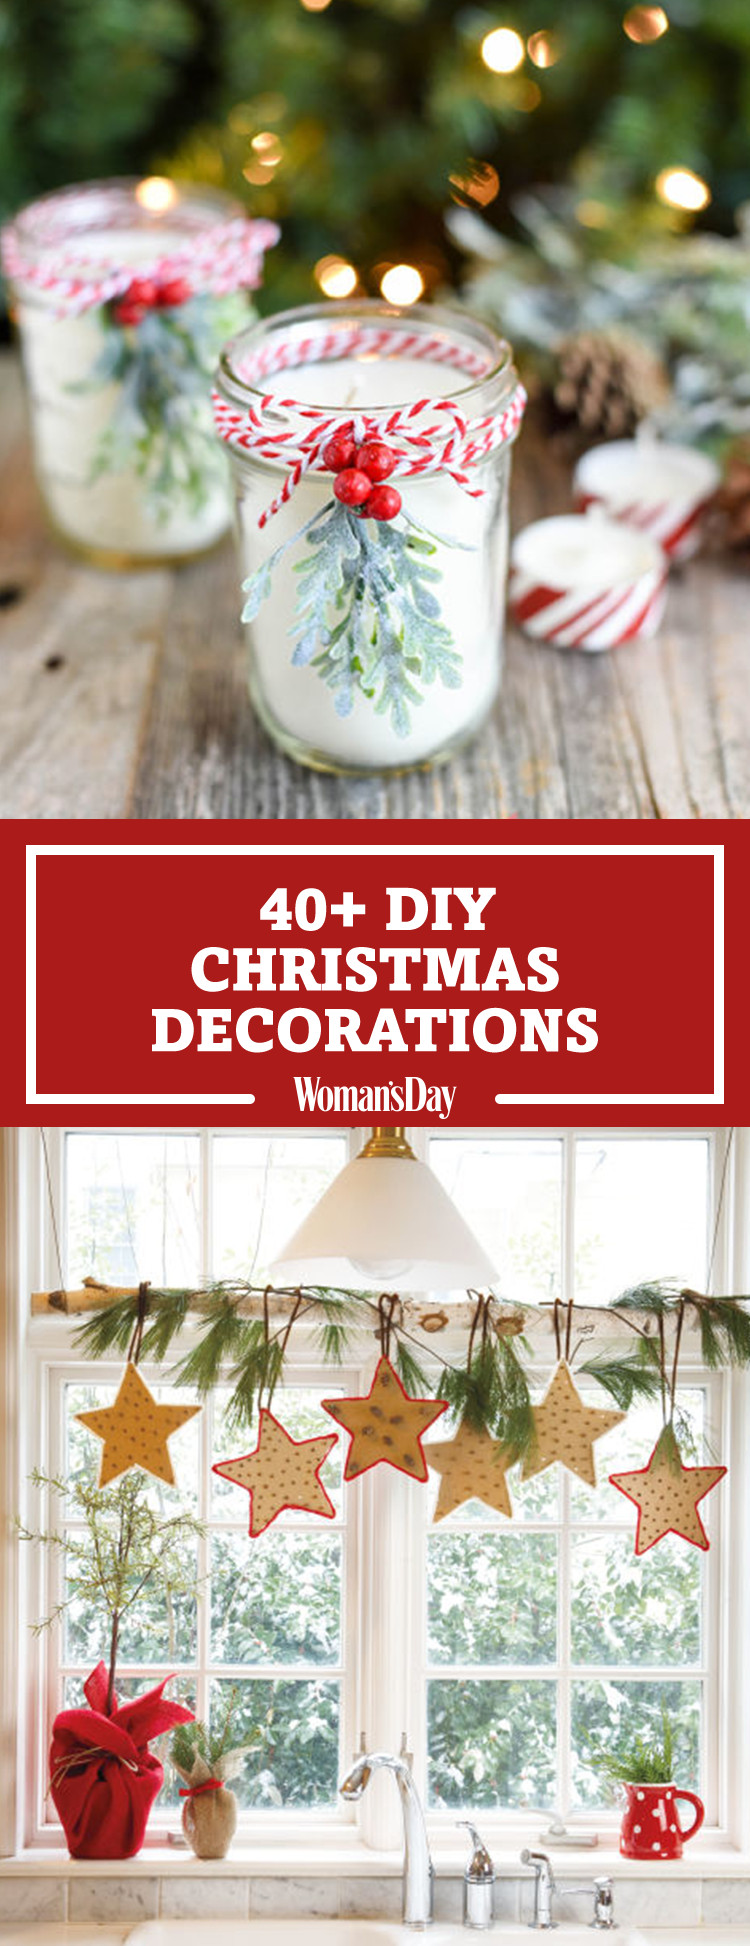 Best ideas about DIY Christmas Ornament Ideas . Save or Pin 47 Easy DIY Christmas Decorations Homemade Ideas for Now.